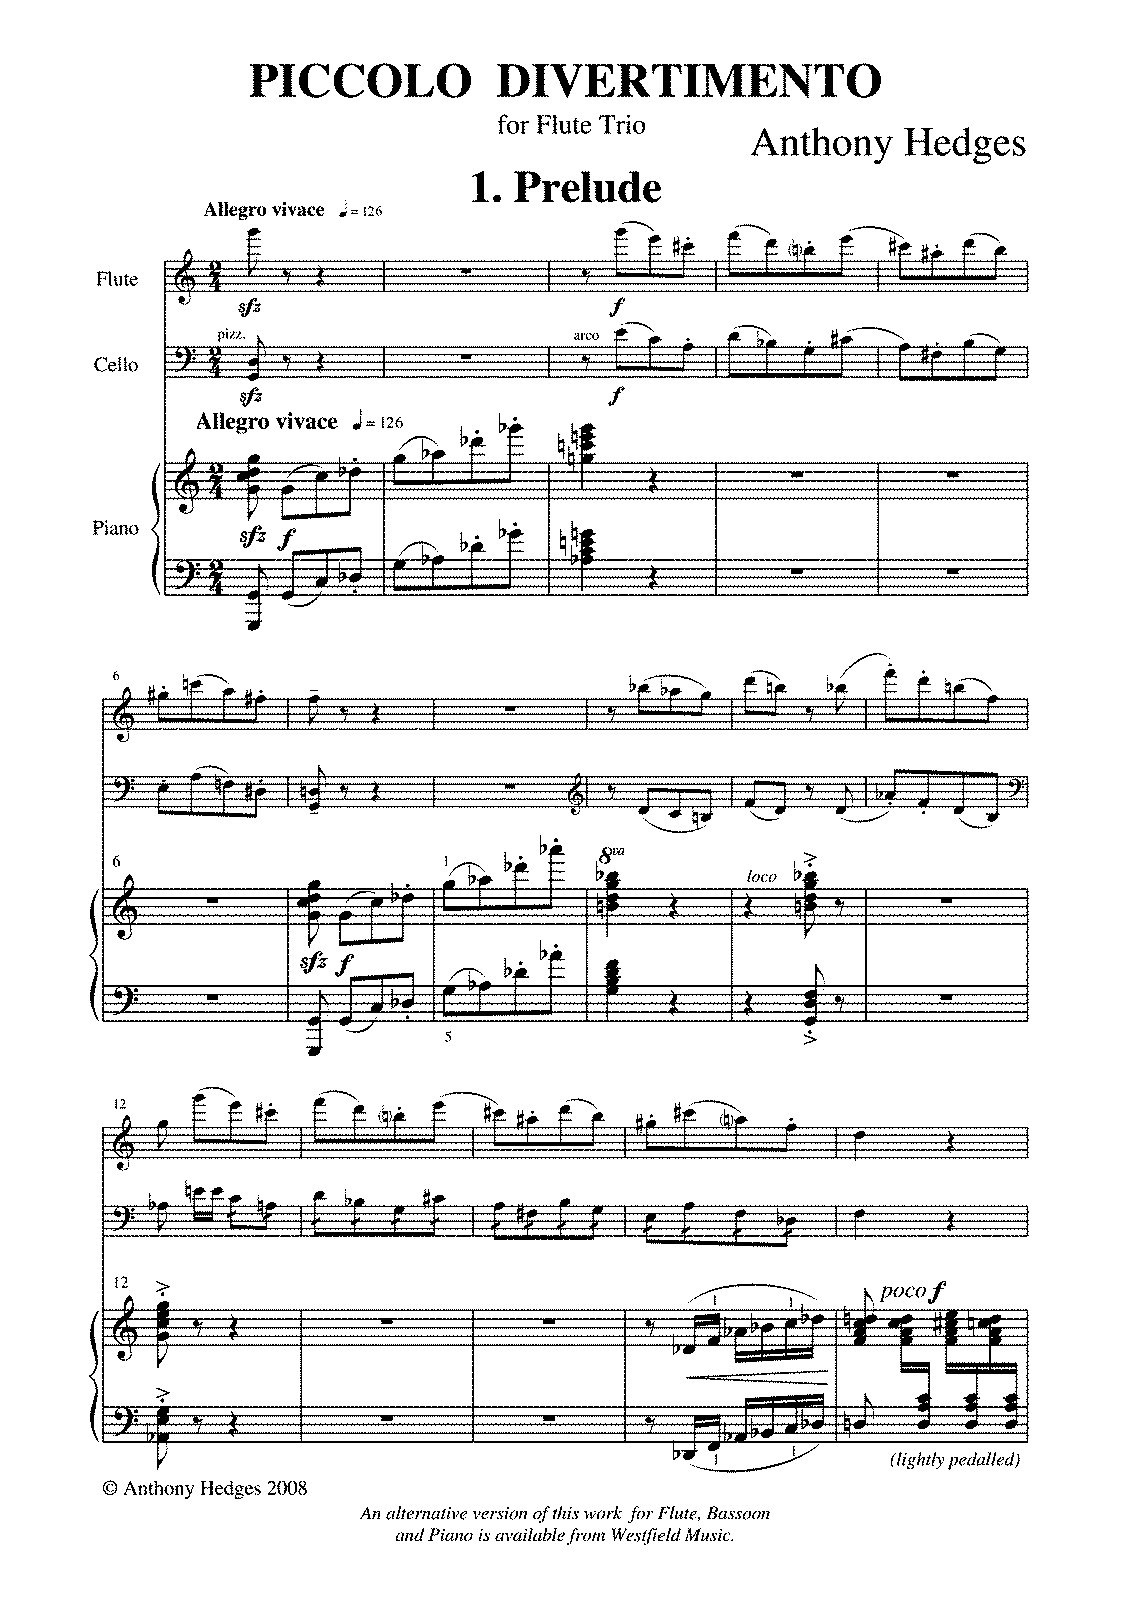 PMLP102649-Piccolo Divertimento.Piano.PDF